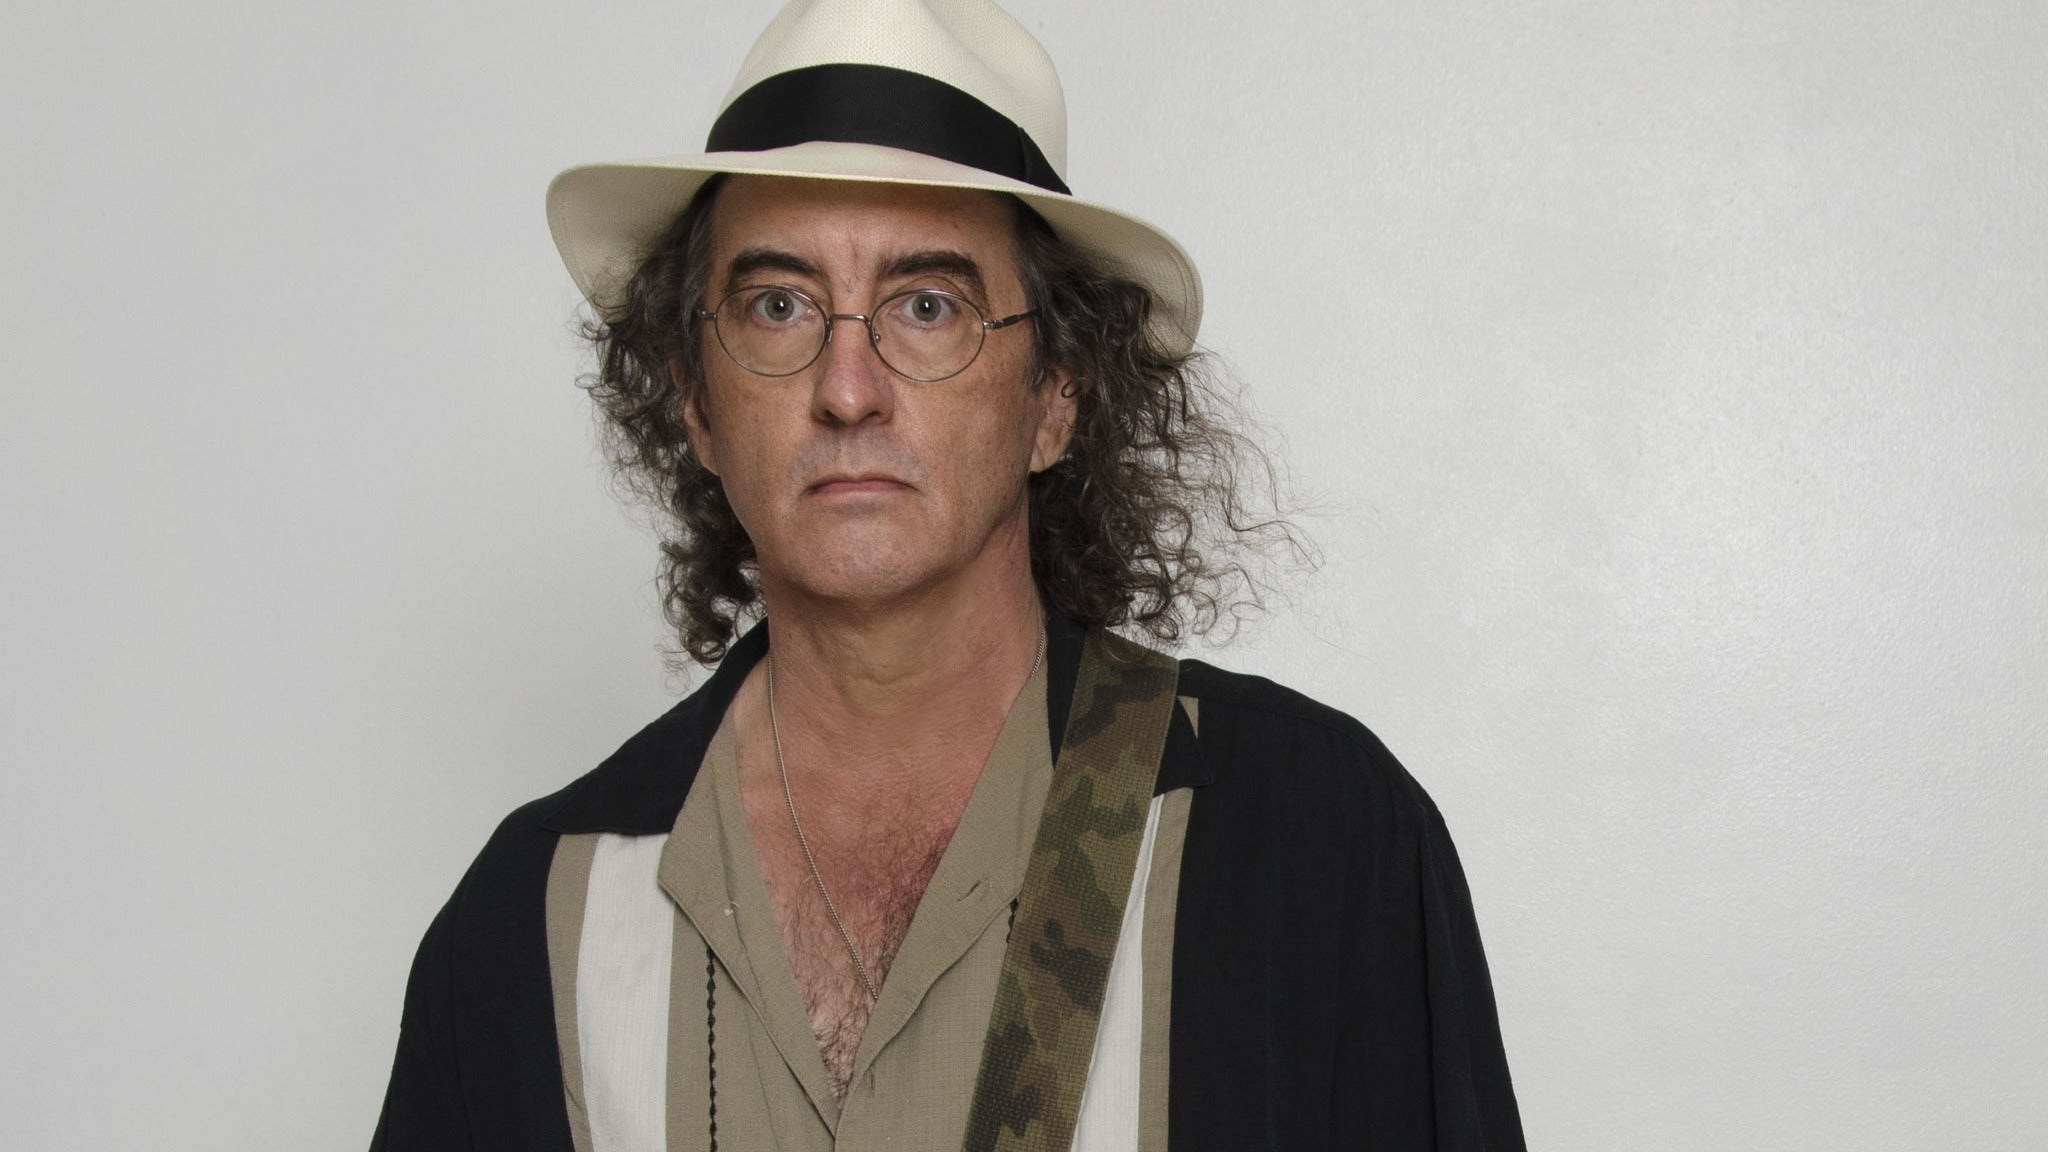 James McMurtry at Siren - Morro Bay, CA 93442